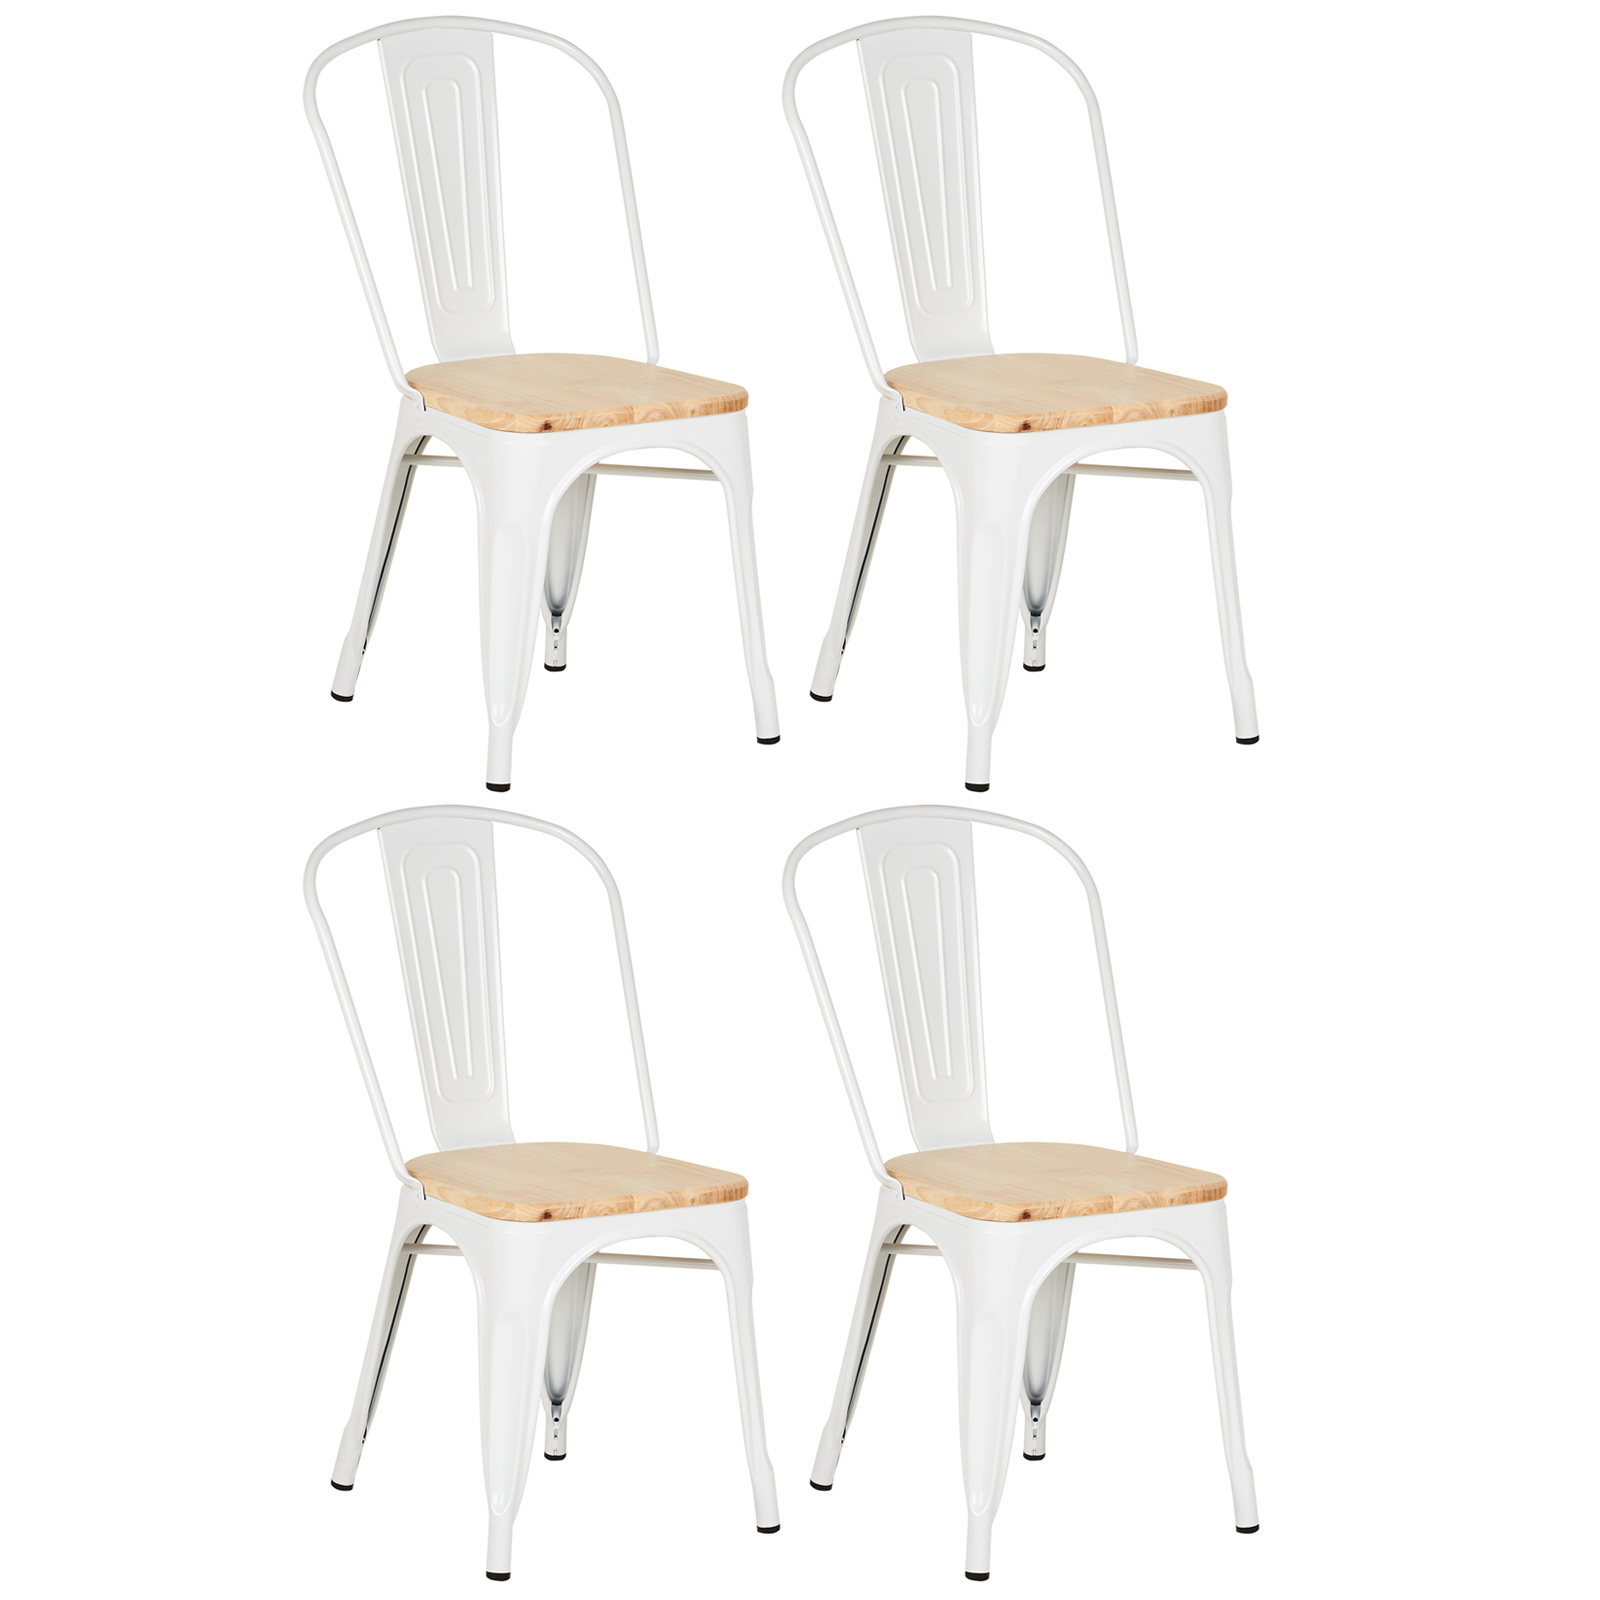 White Bistro Chairs Details About Hartleys White Industrial Metal Dining Chair Cafe Bistro Stacking Wood Top Seat